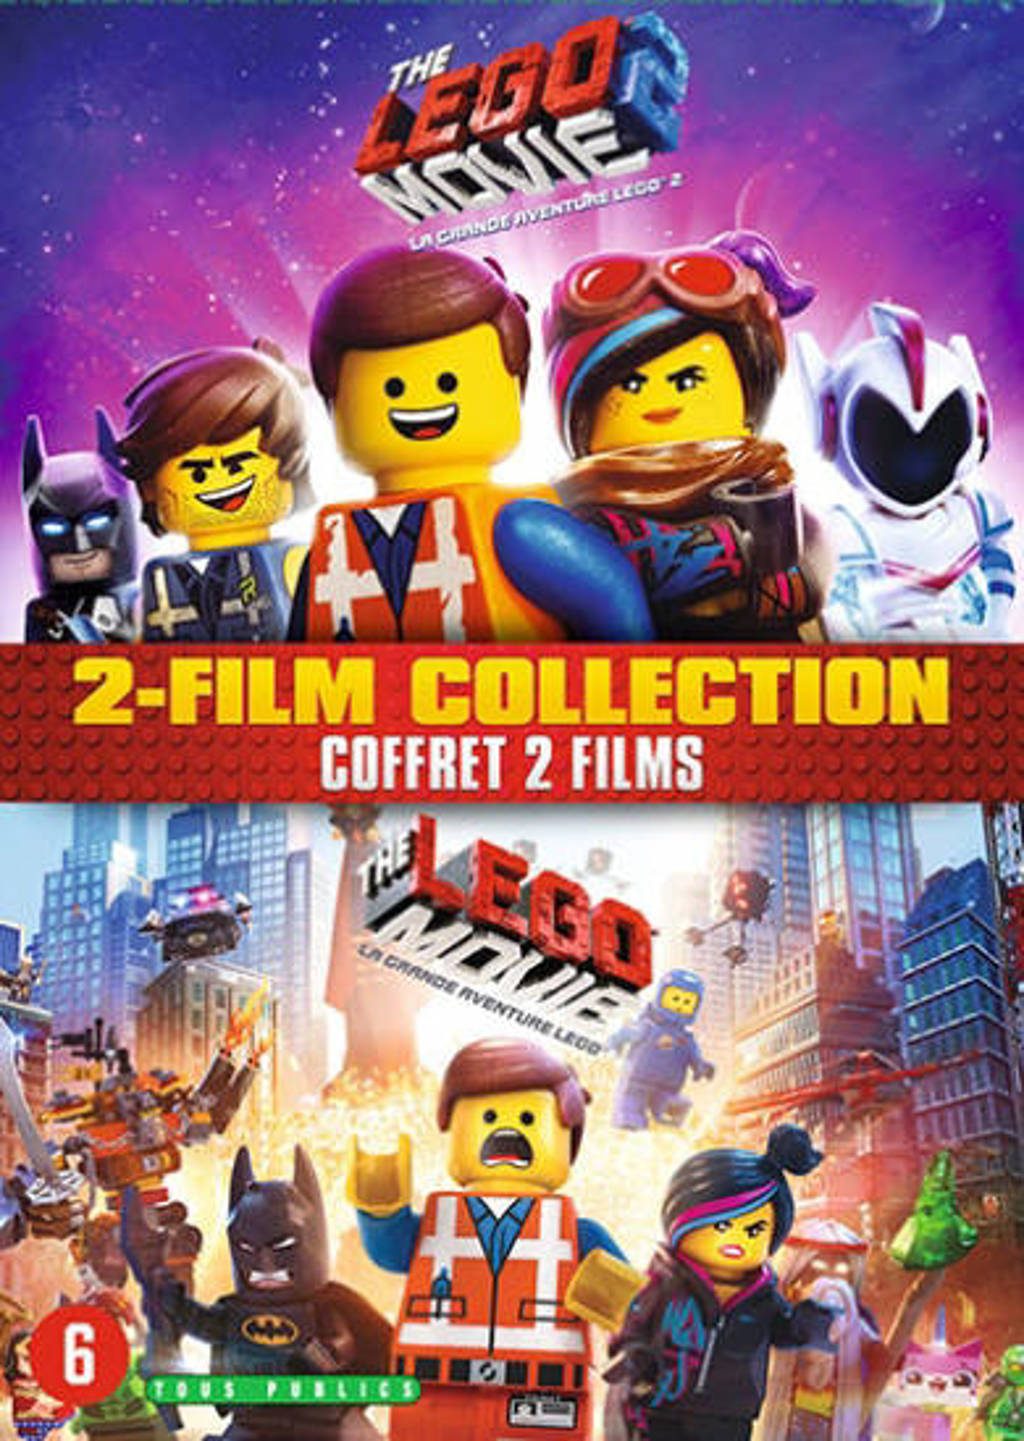 Lego movie 1&2 (DVD)